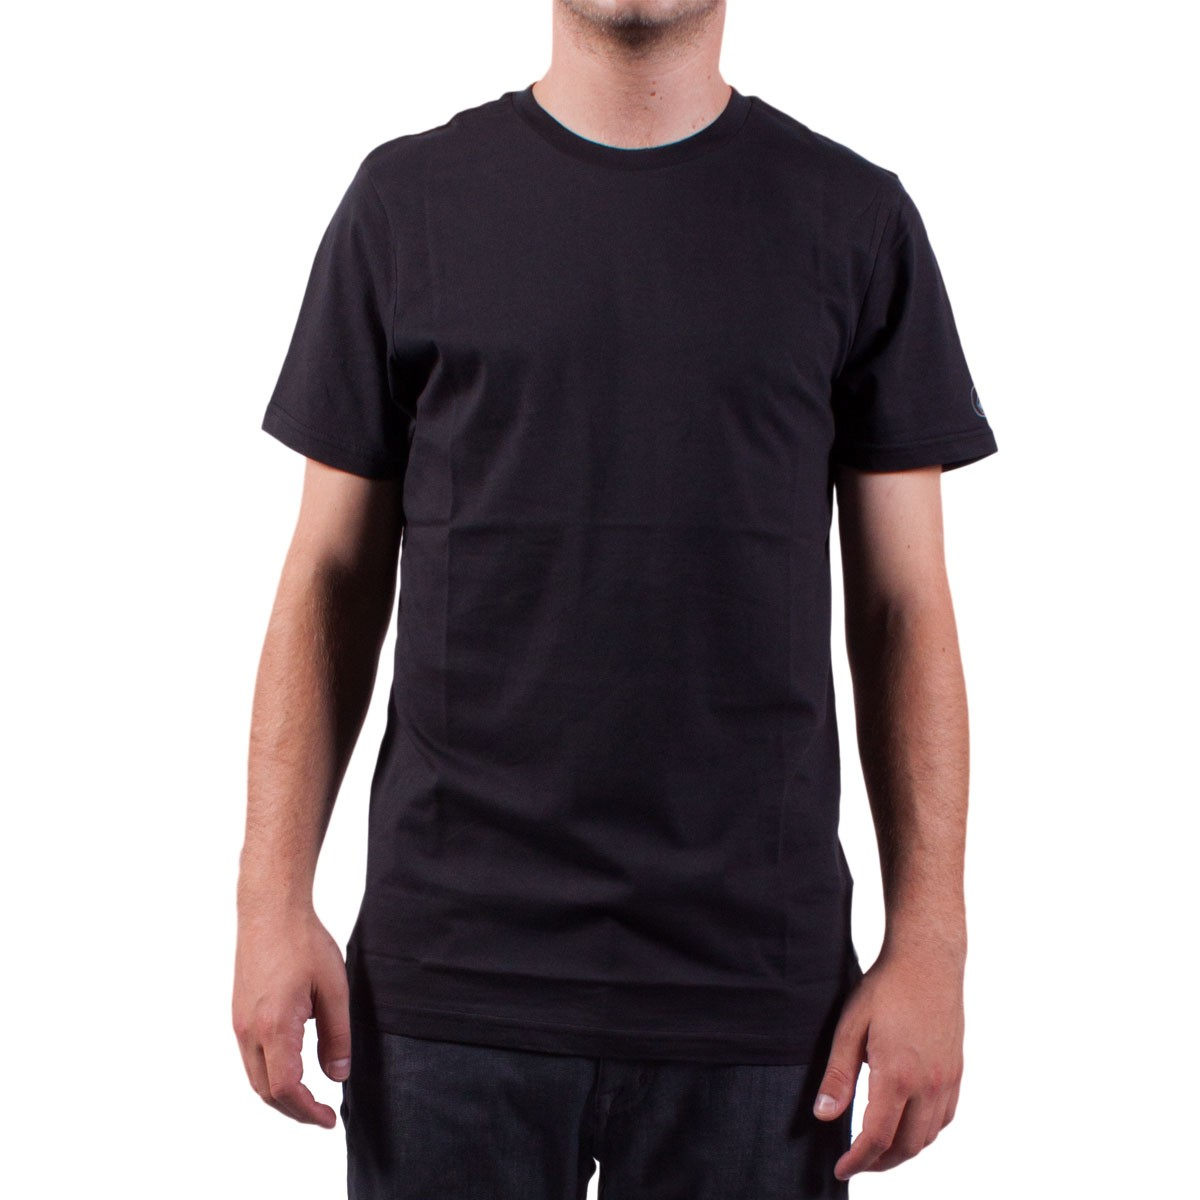 T Shirt Black Label